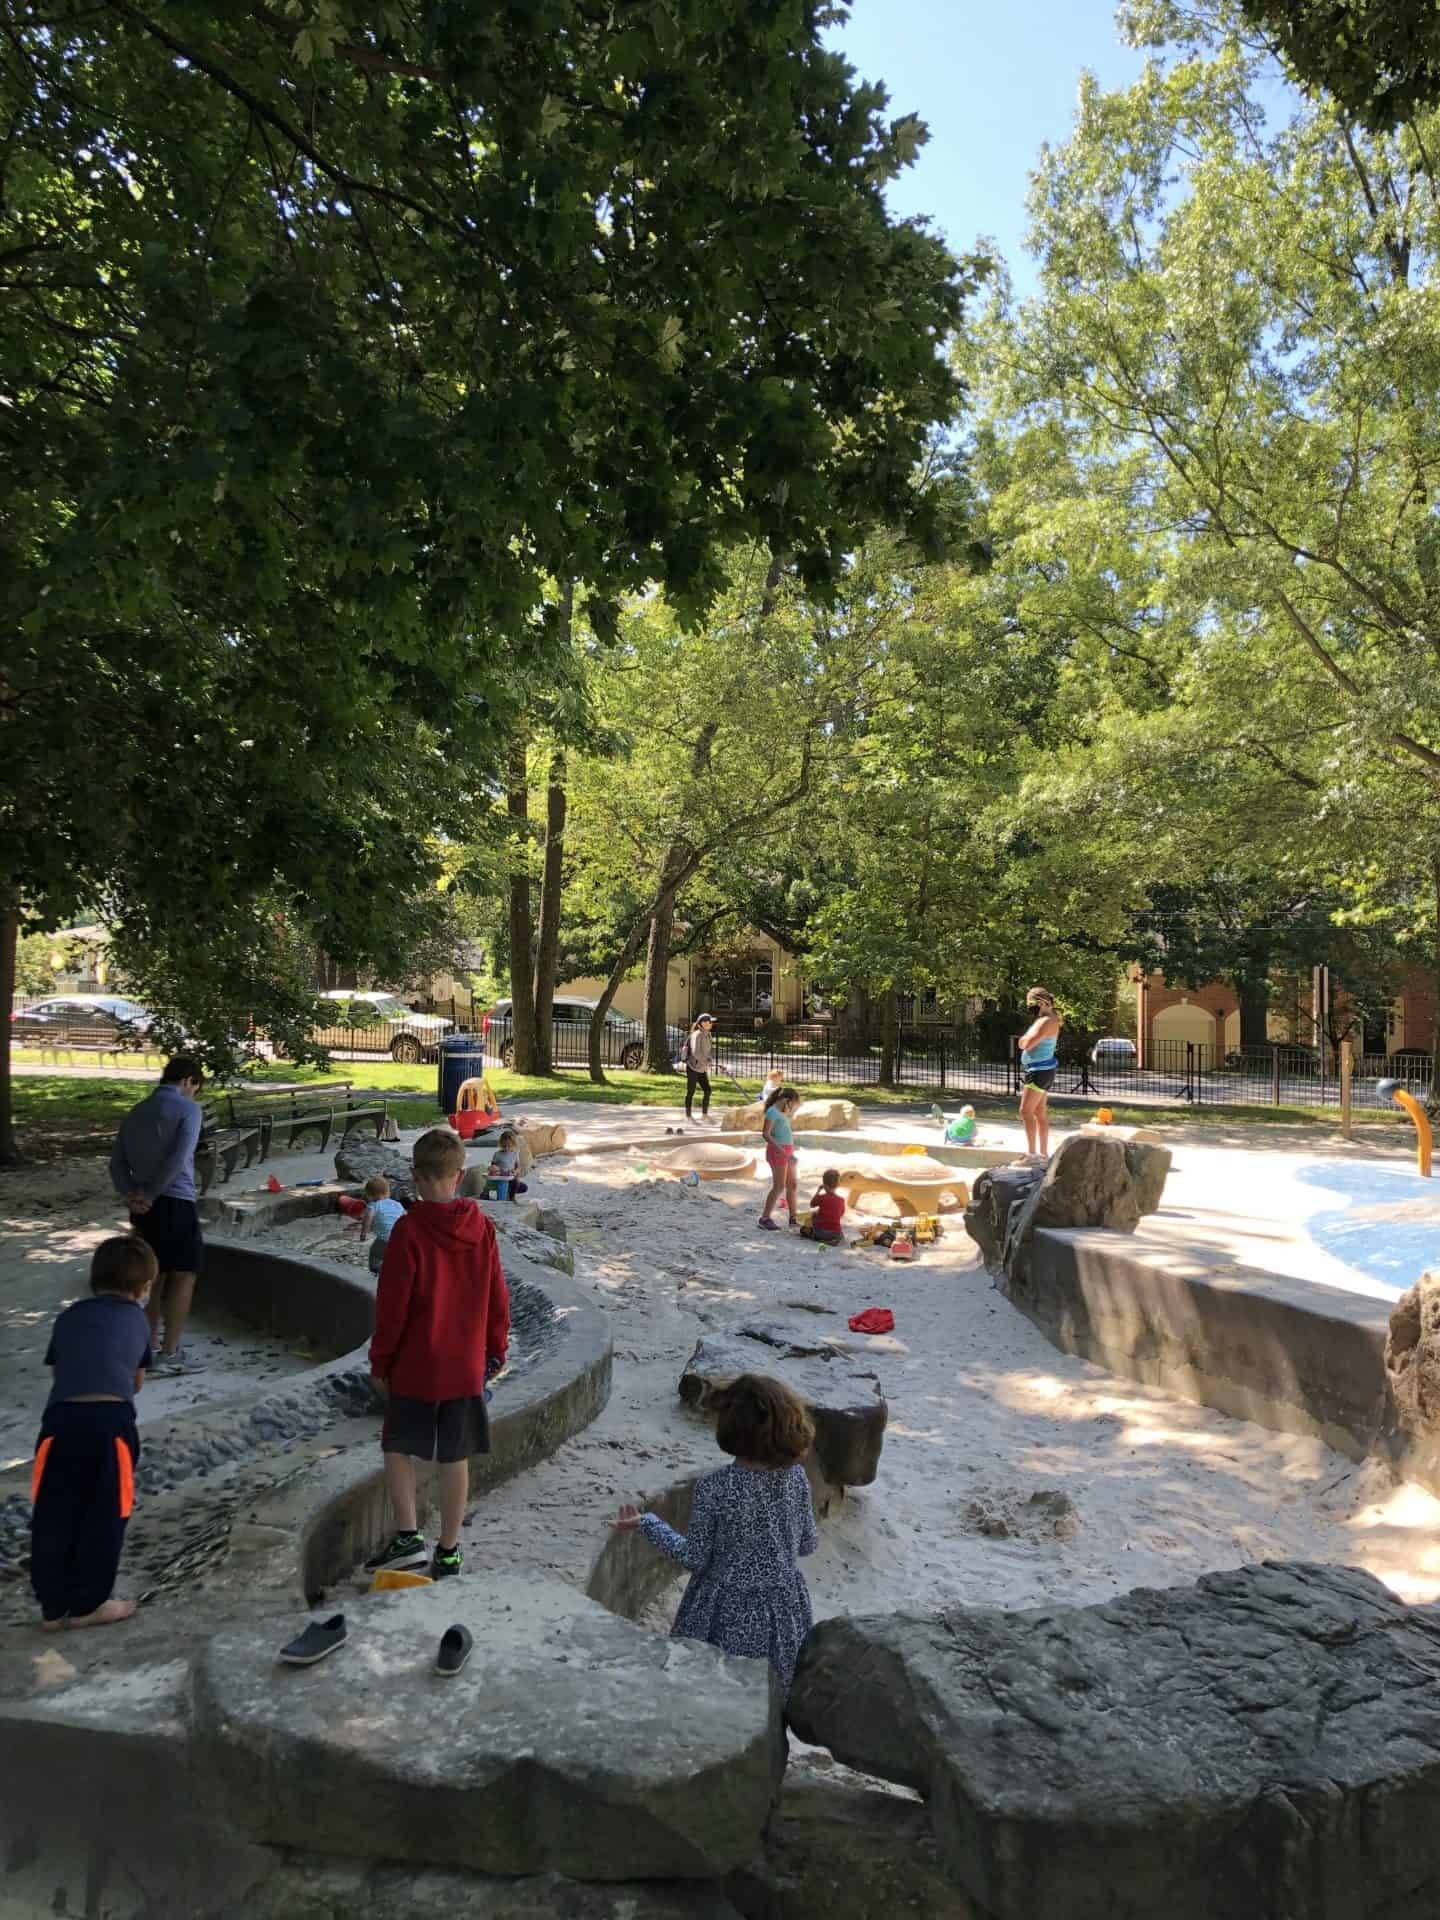 Chestnut Hills Best Playgrounds in Arlington Va